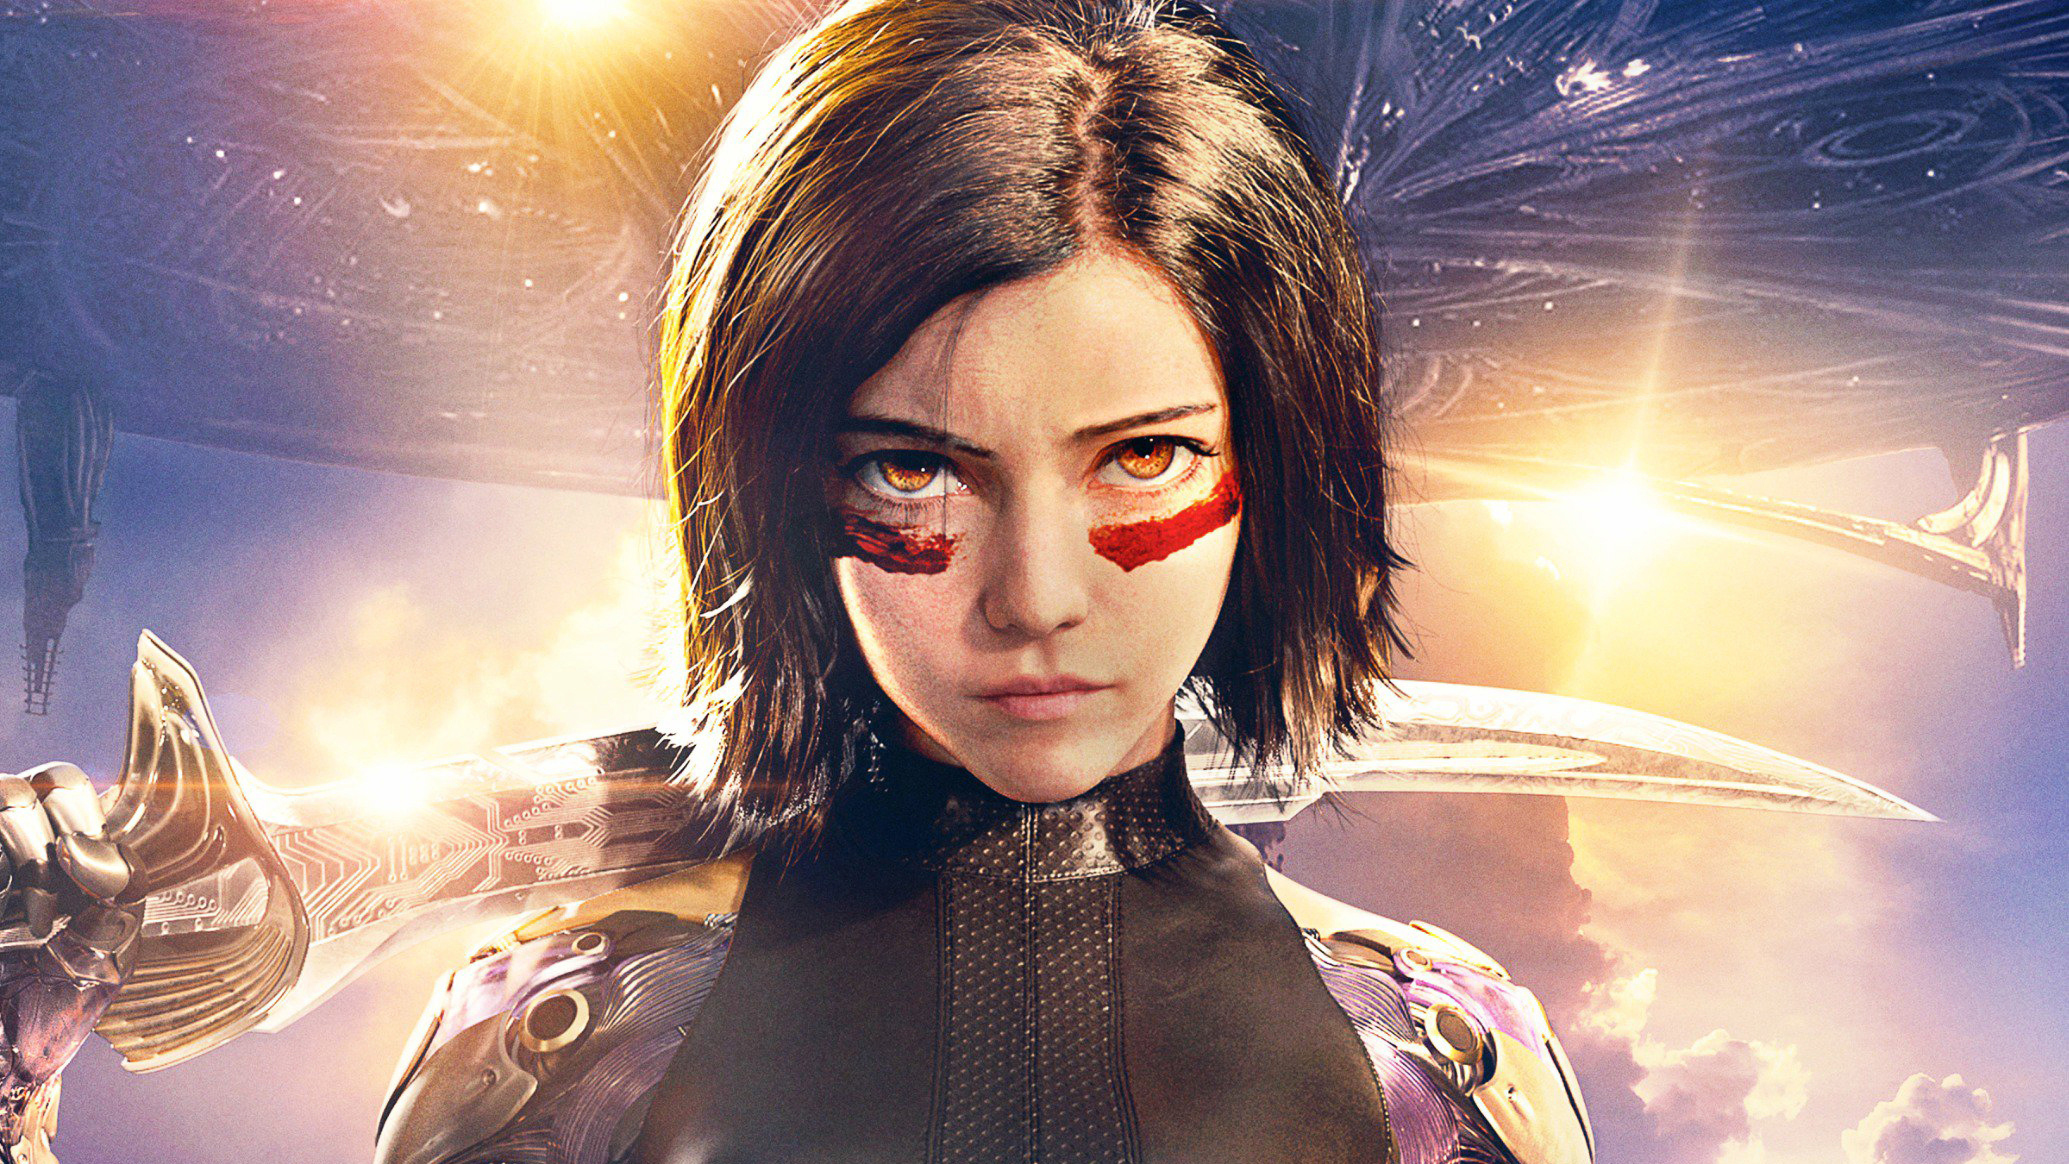 41 Alita Battle Angel Hd Wallpapers On Wallpapersafari